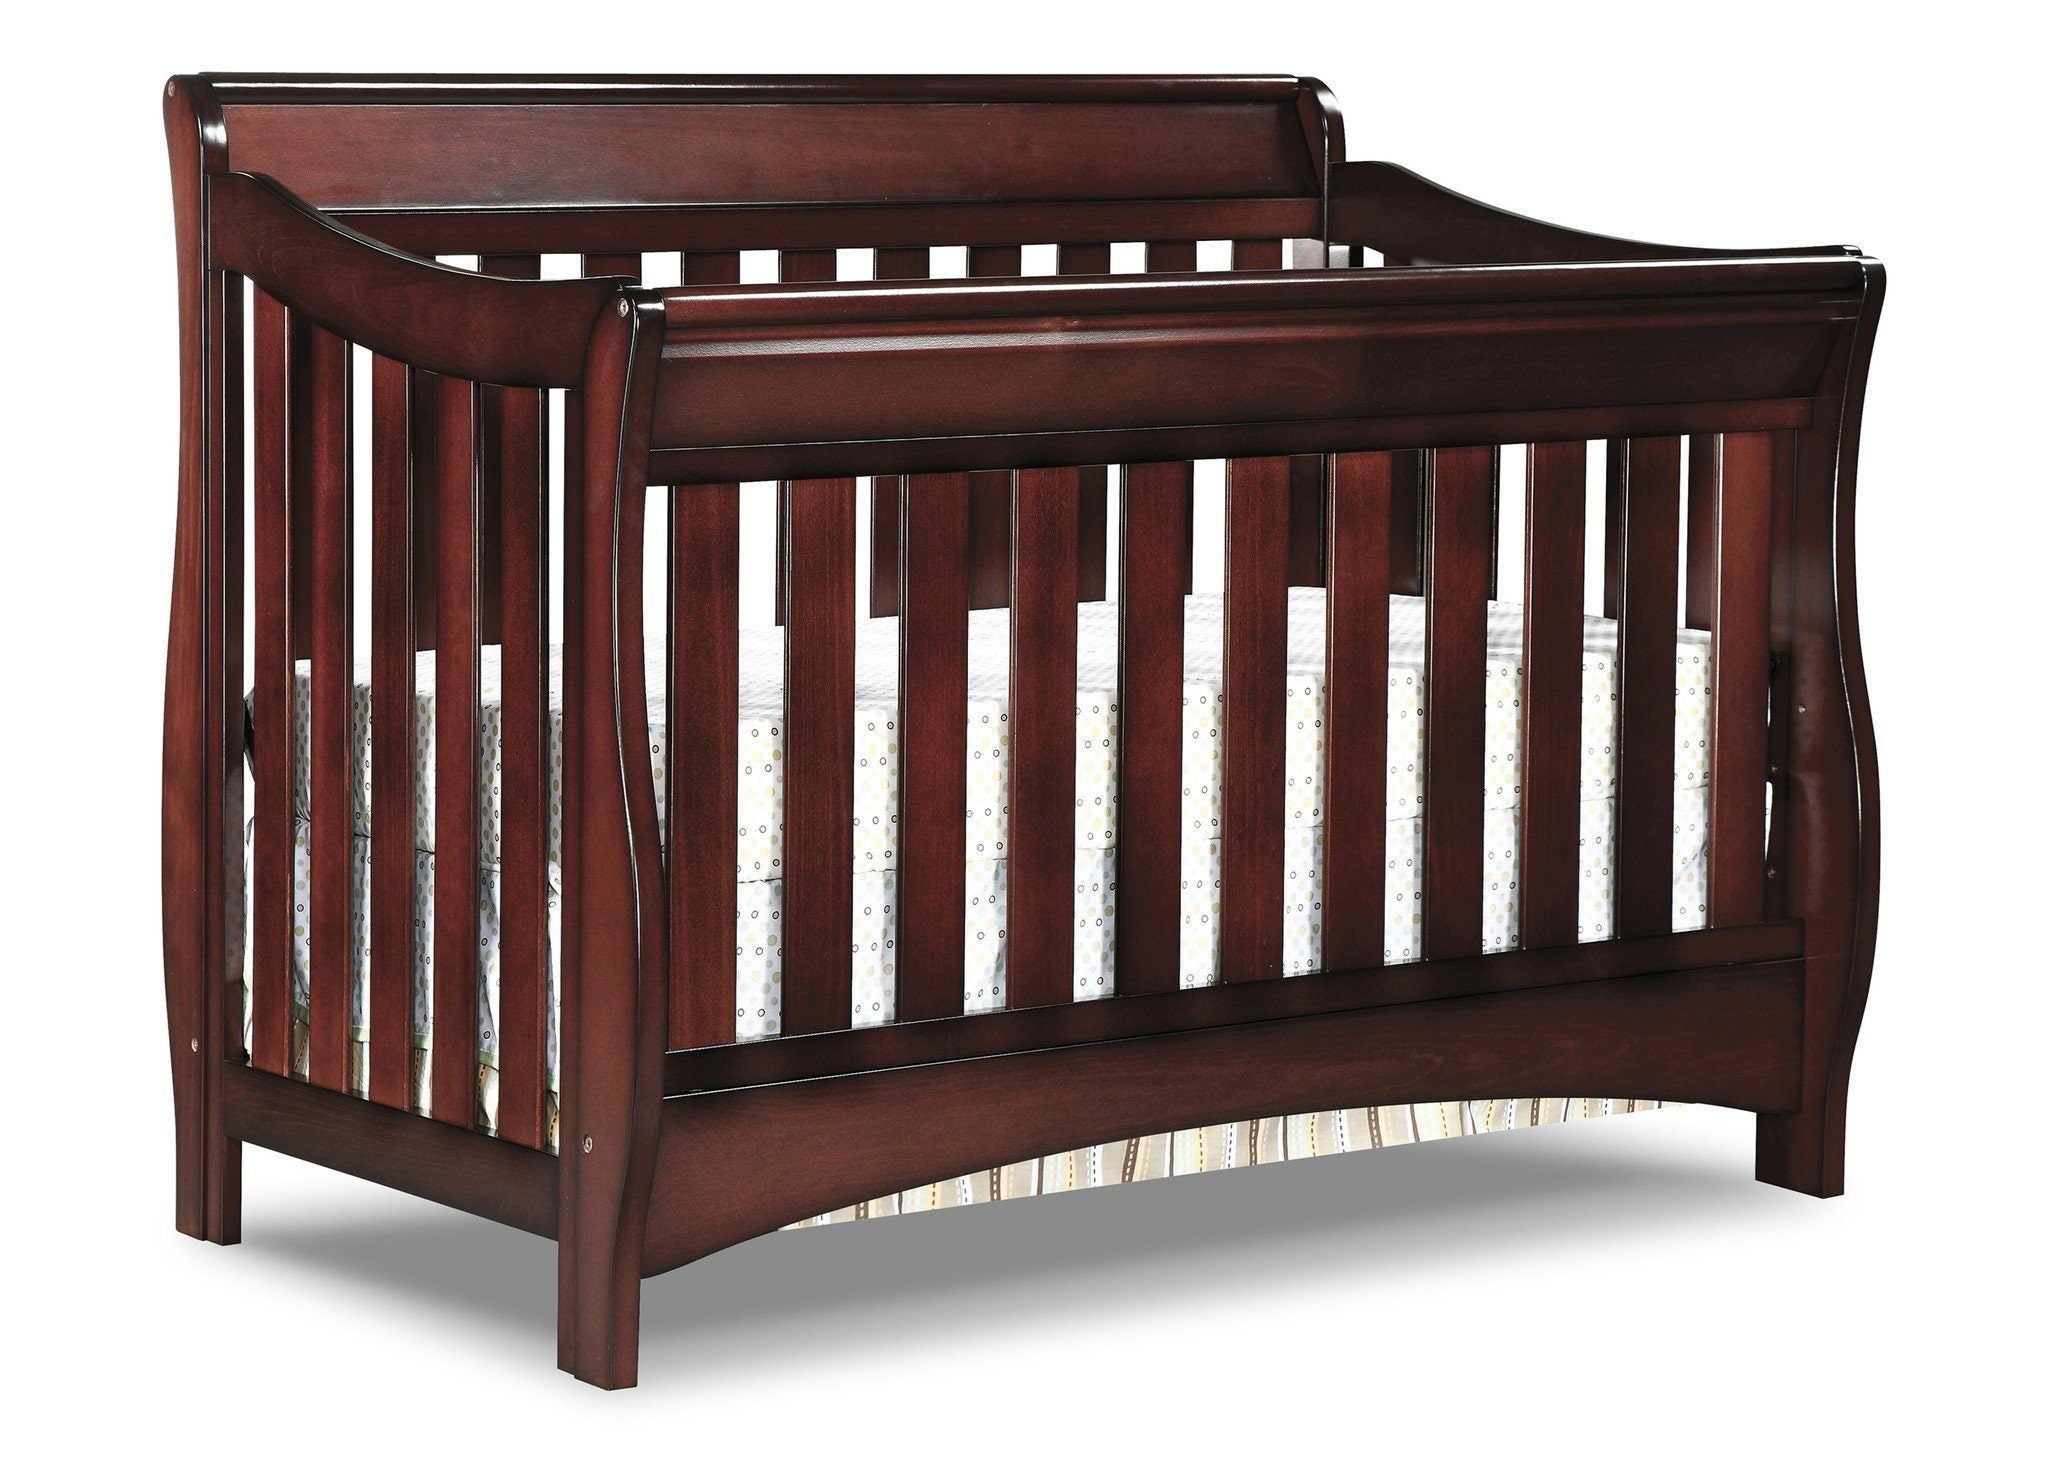 Delta Children Black Cherry Espresso (607) Bentley 'S' Series 4-in-1 Crib, Crib Conversion c3c